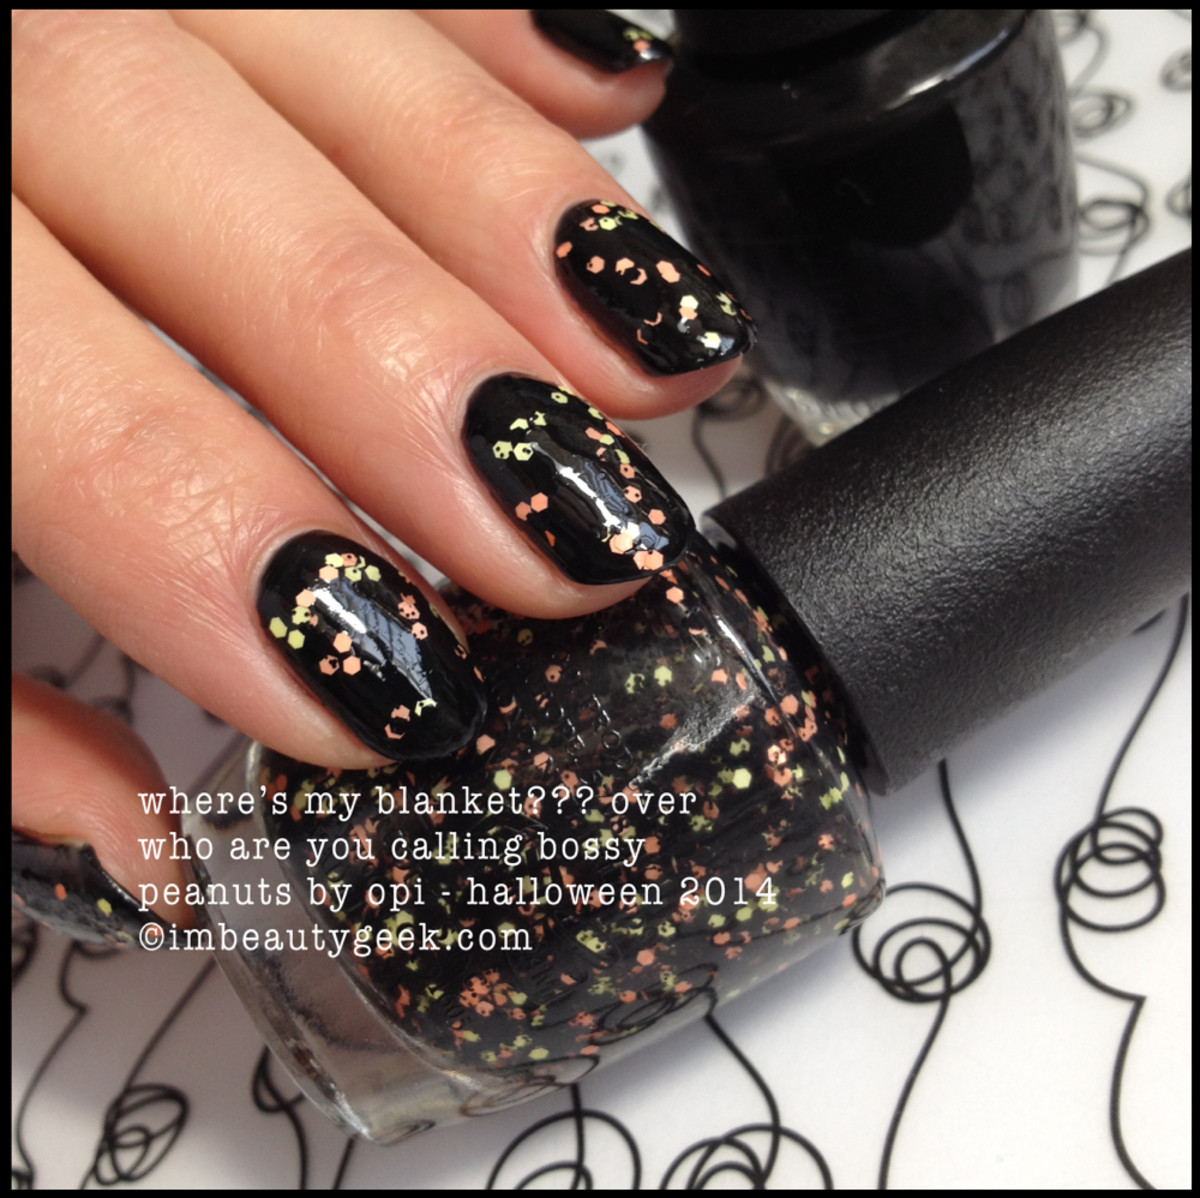 OPI Where's My Blanket over Black Peanuts by OPI Halloween 2014